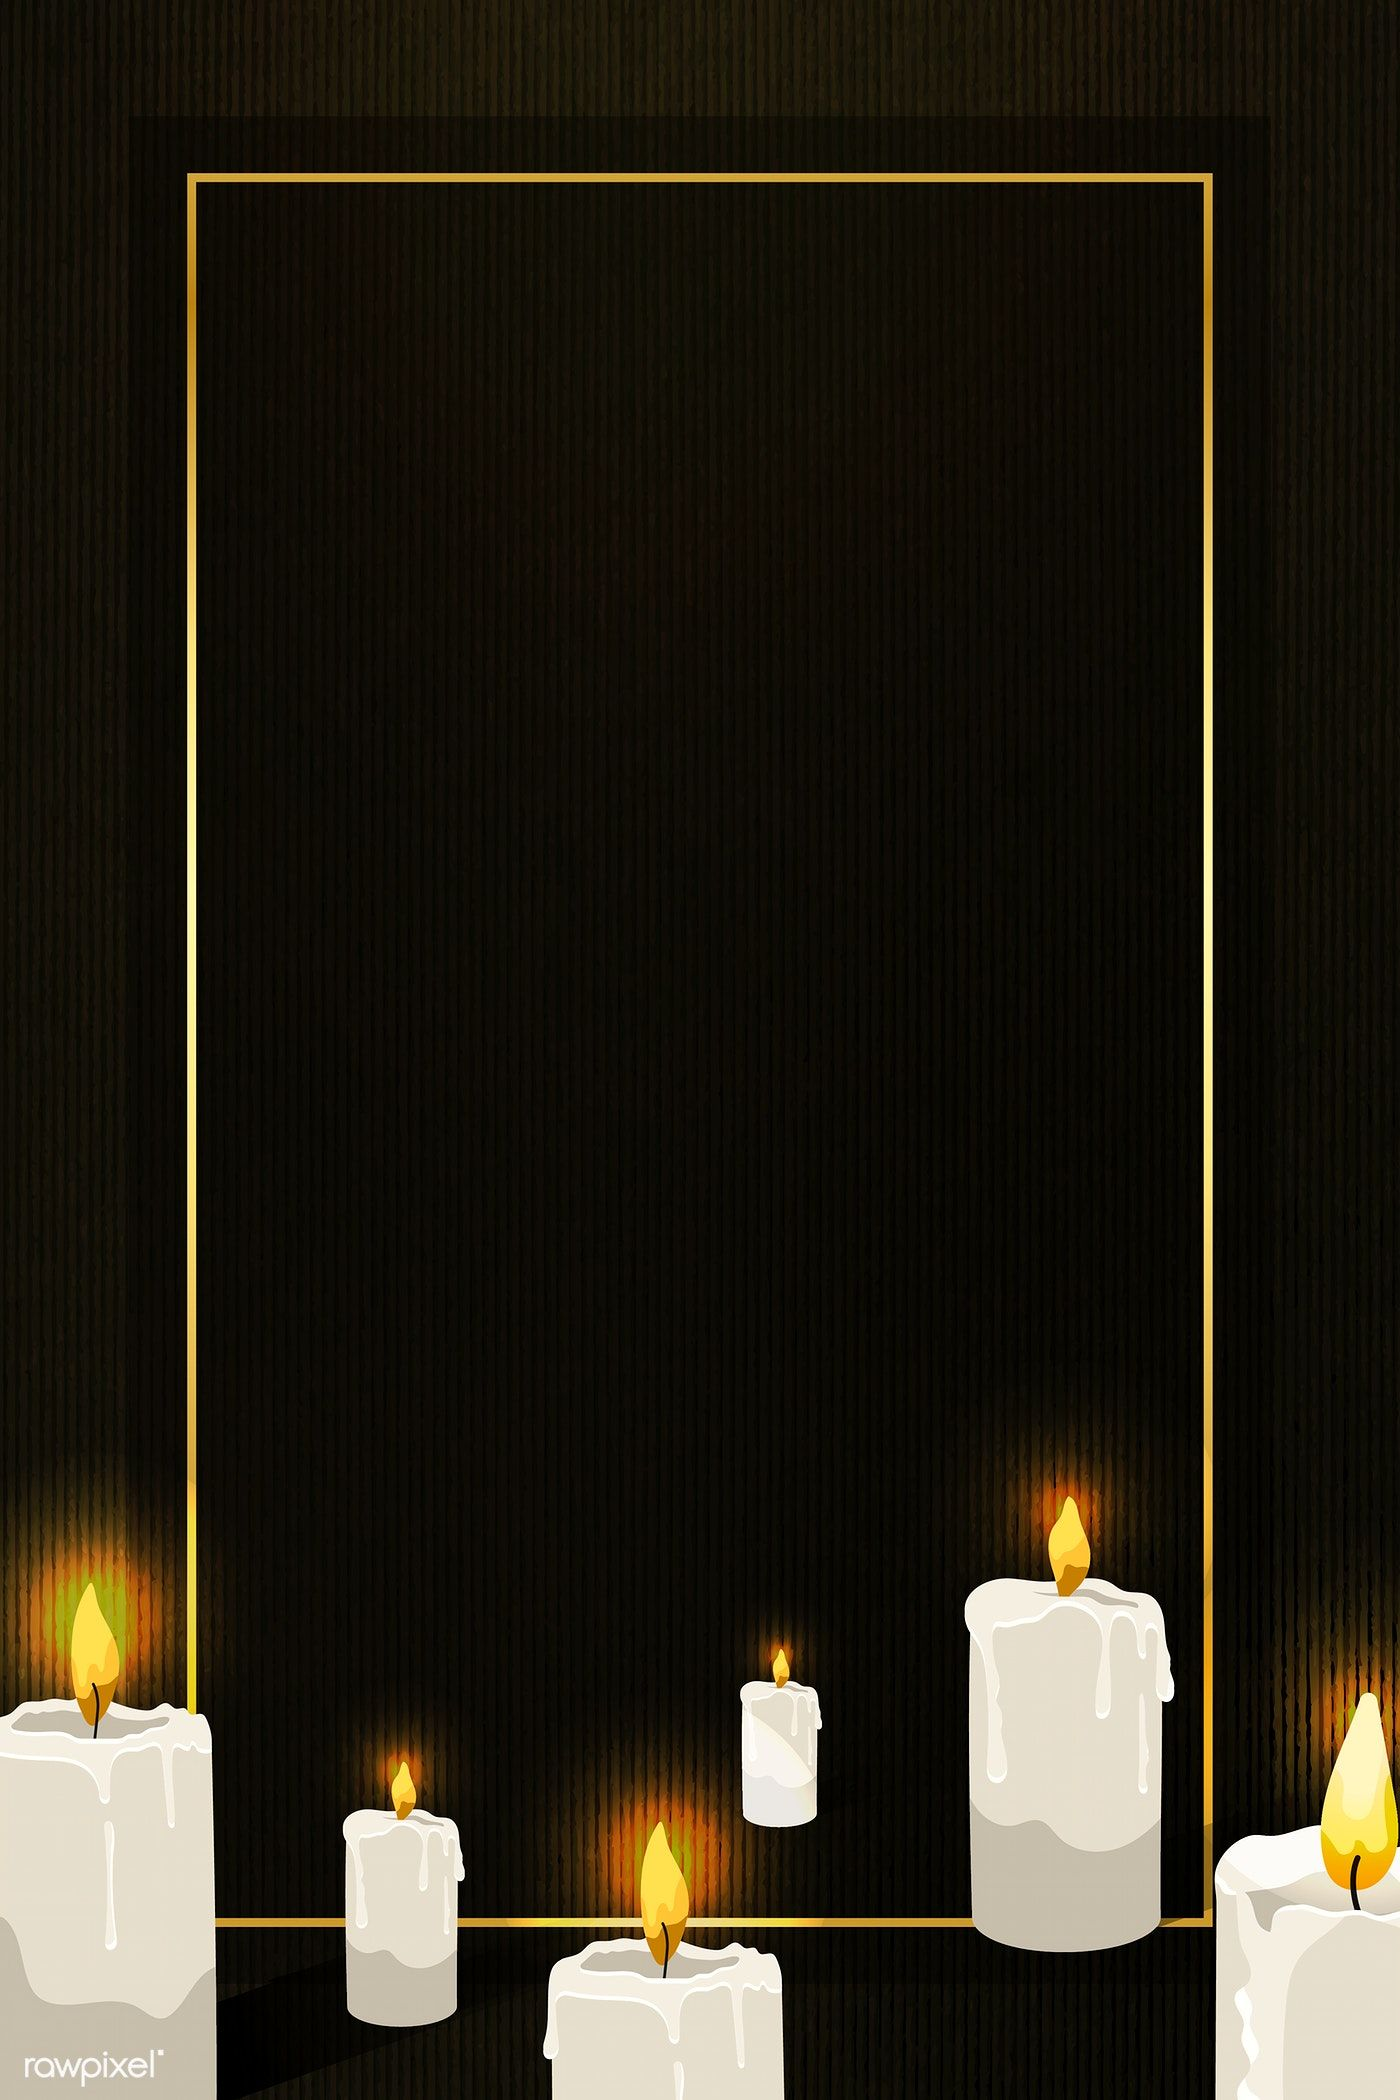 Gold Frame On Lit Candles Pattern Black Background Vector Free Image By Rawpixel Com Aew Candle Pattern Vector Free Gold Frame